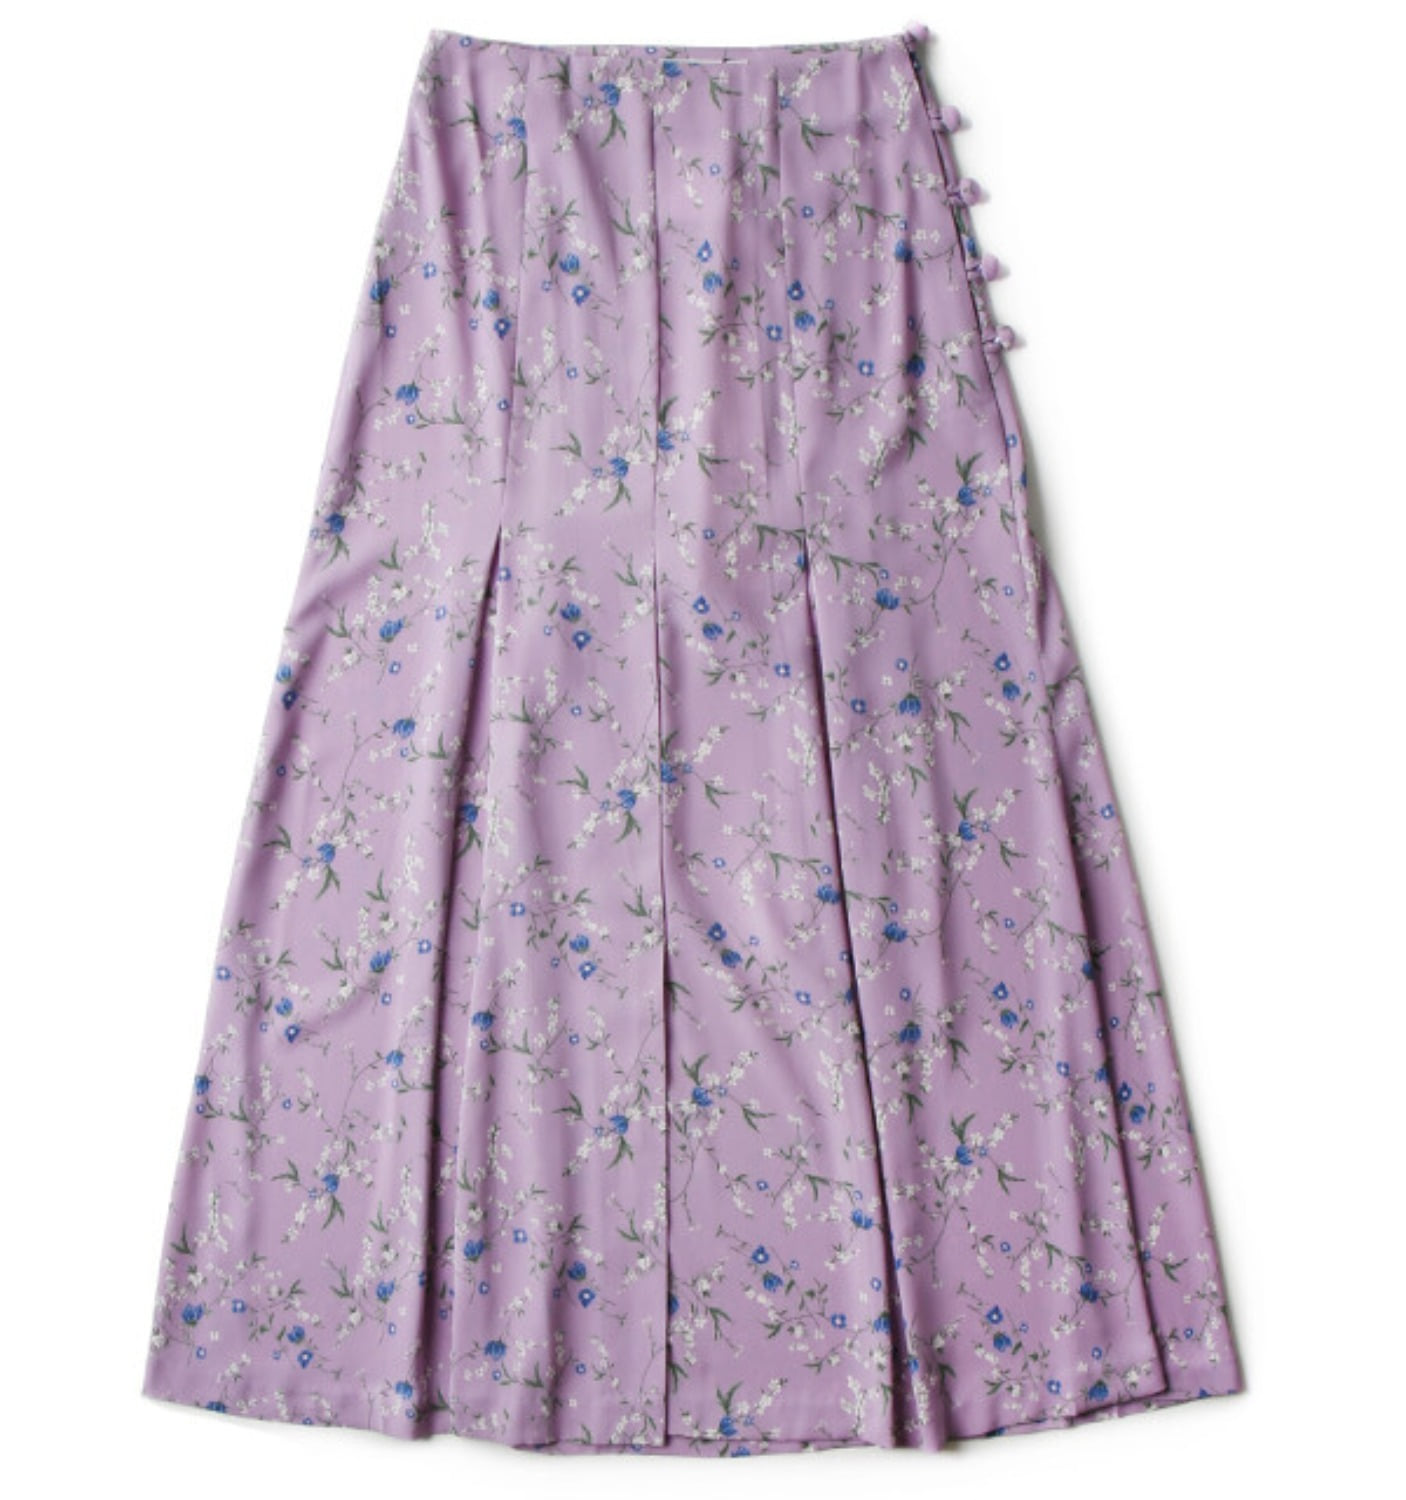 HIGHWAIST FLARE SKIRT VIOLET FLORAL